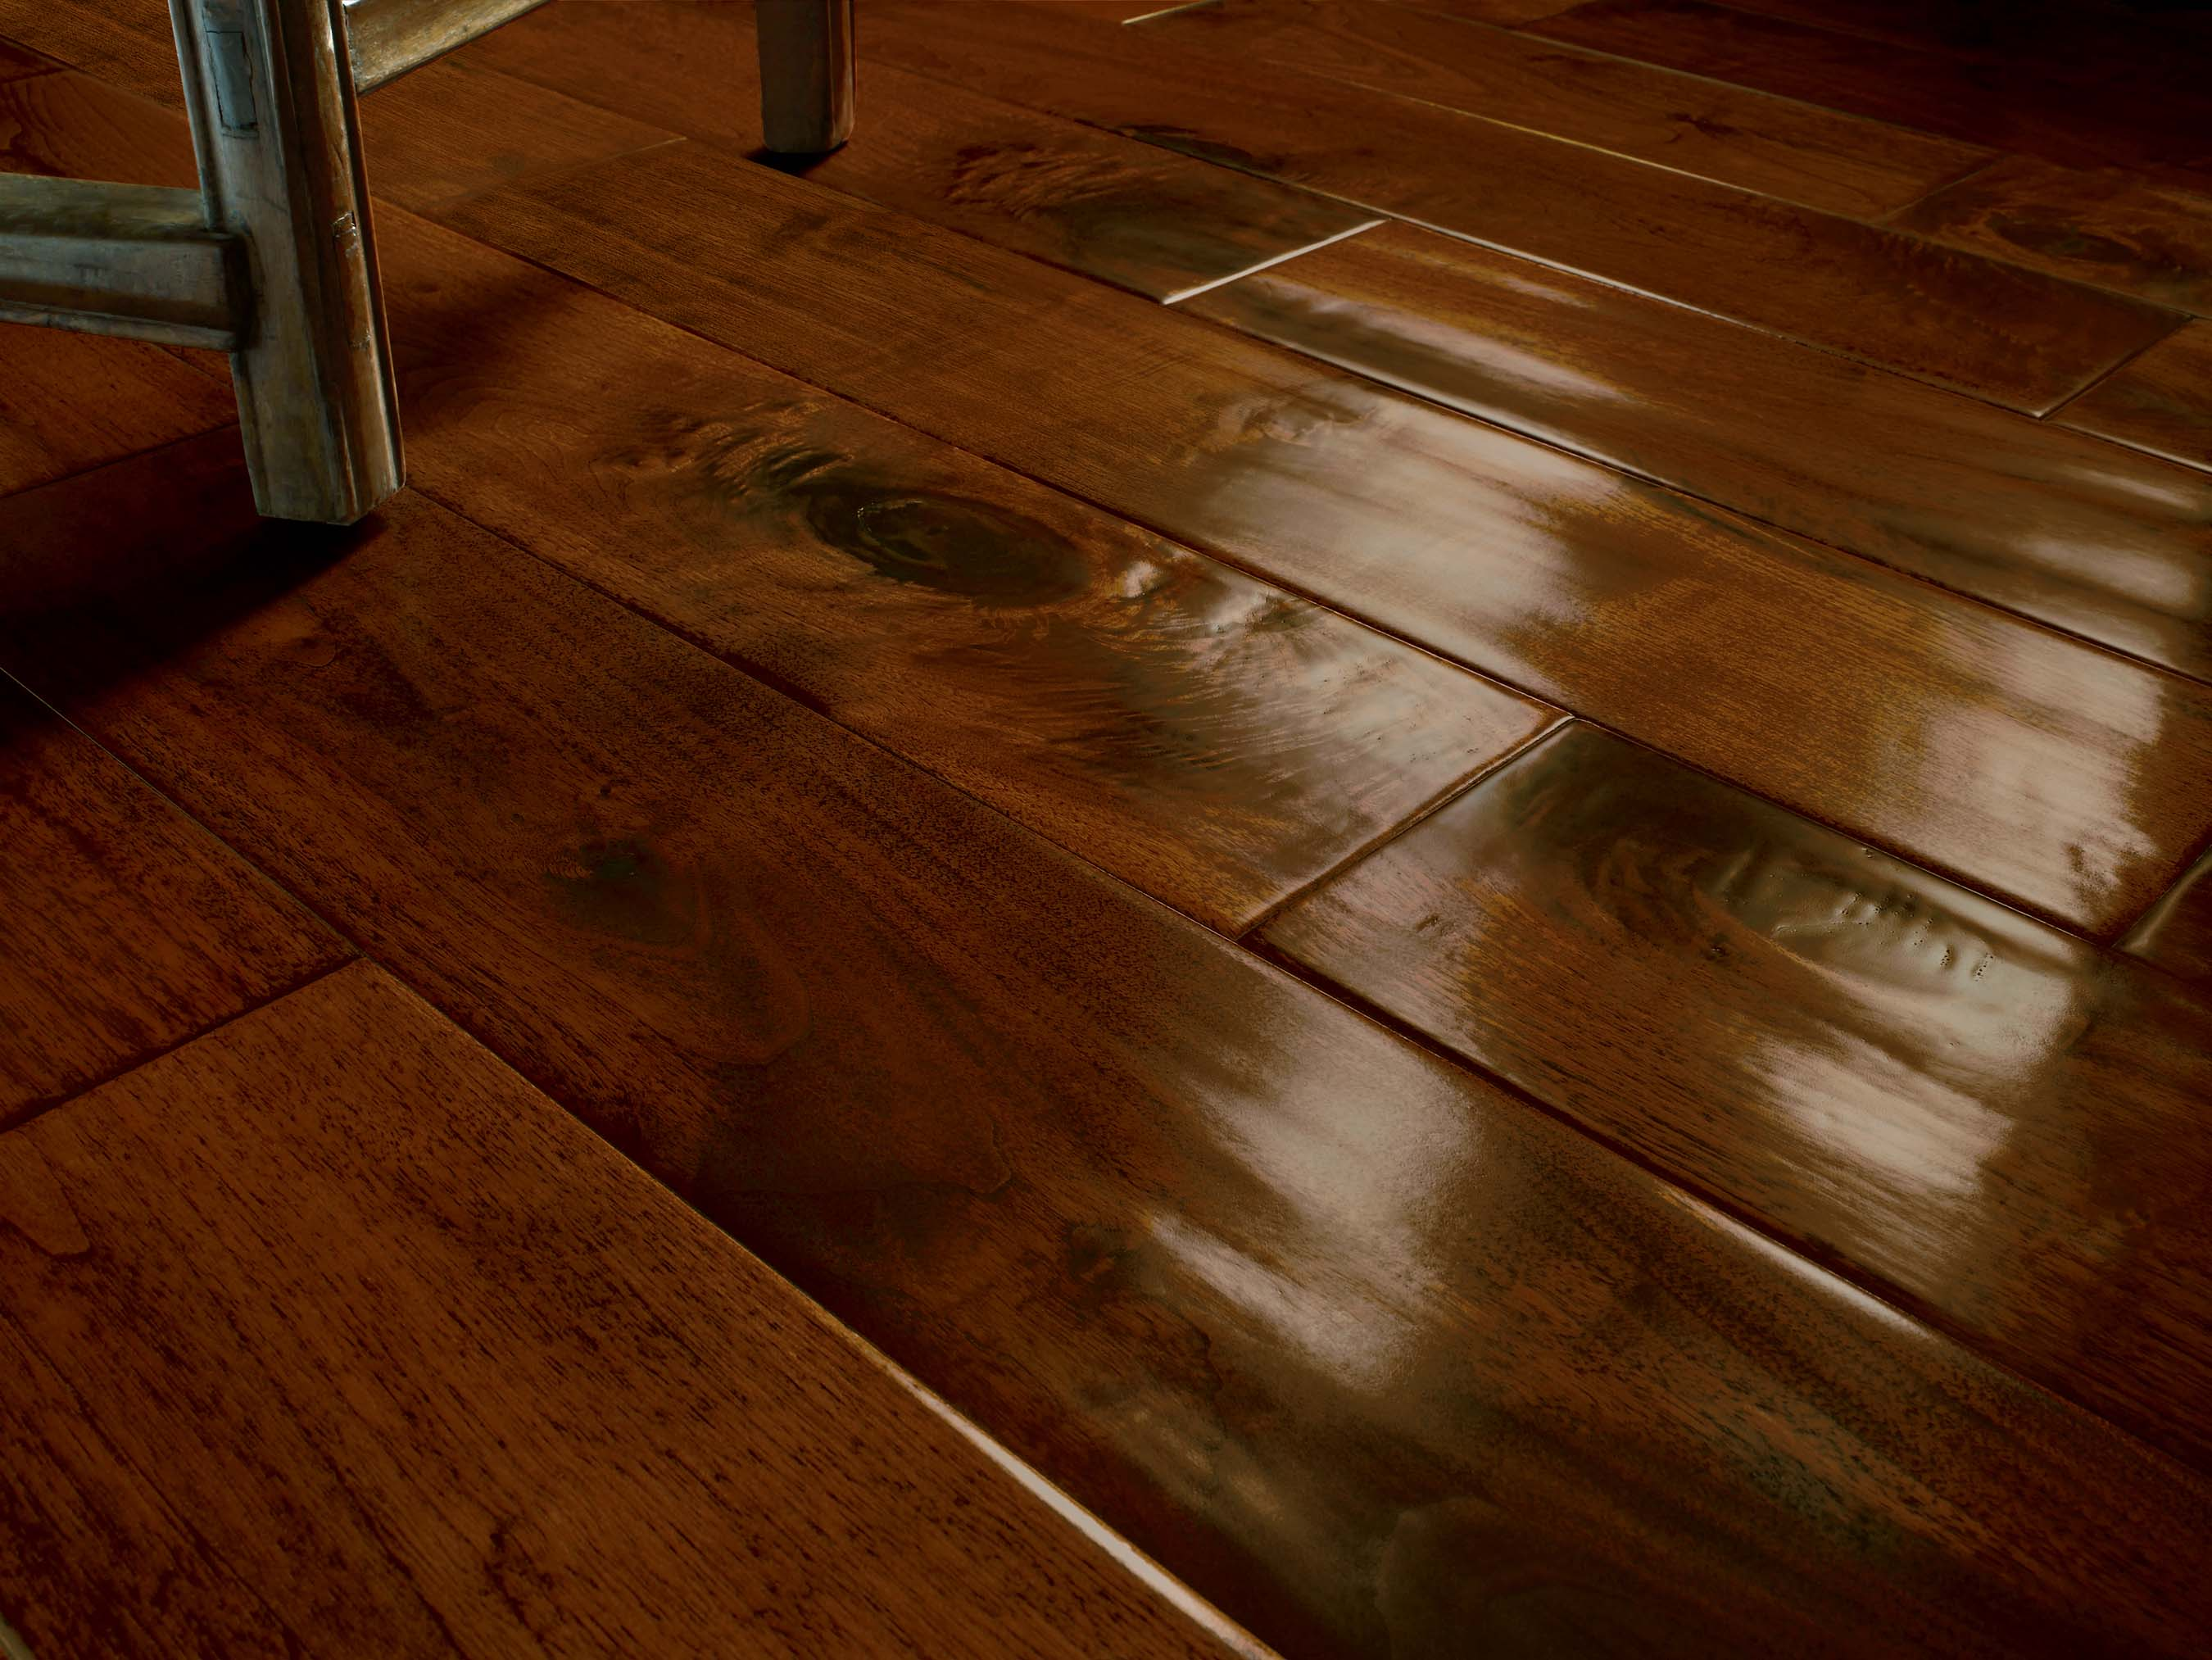 Locking Vinyl Plank Flooring Groom Your Home Interior With Allure Vinyl Plank Floor For